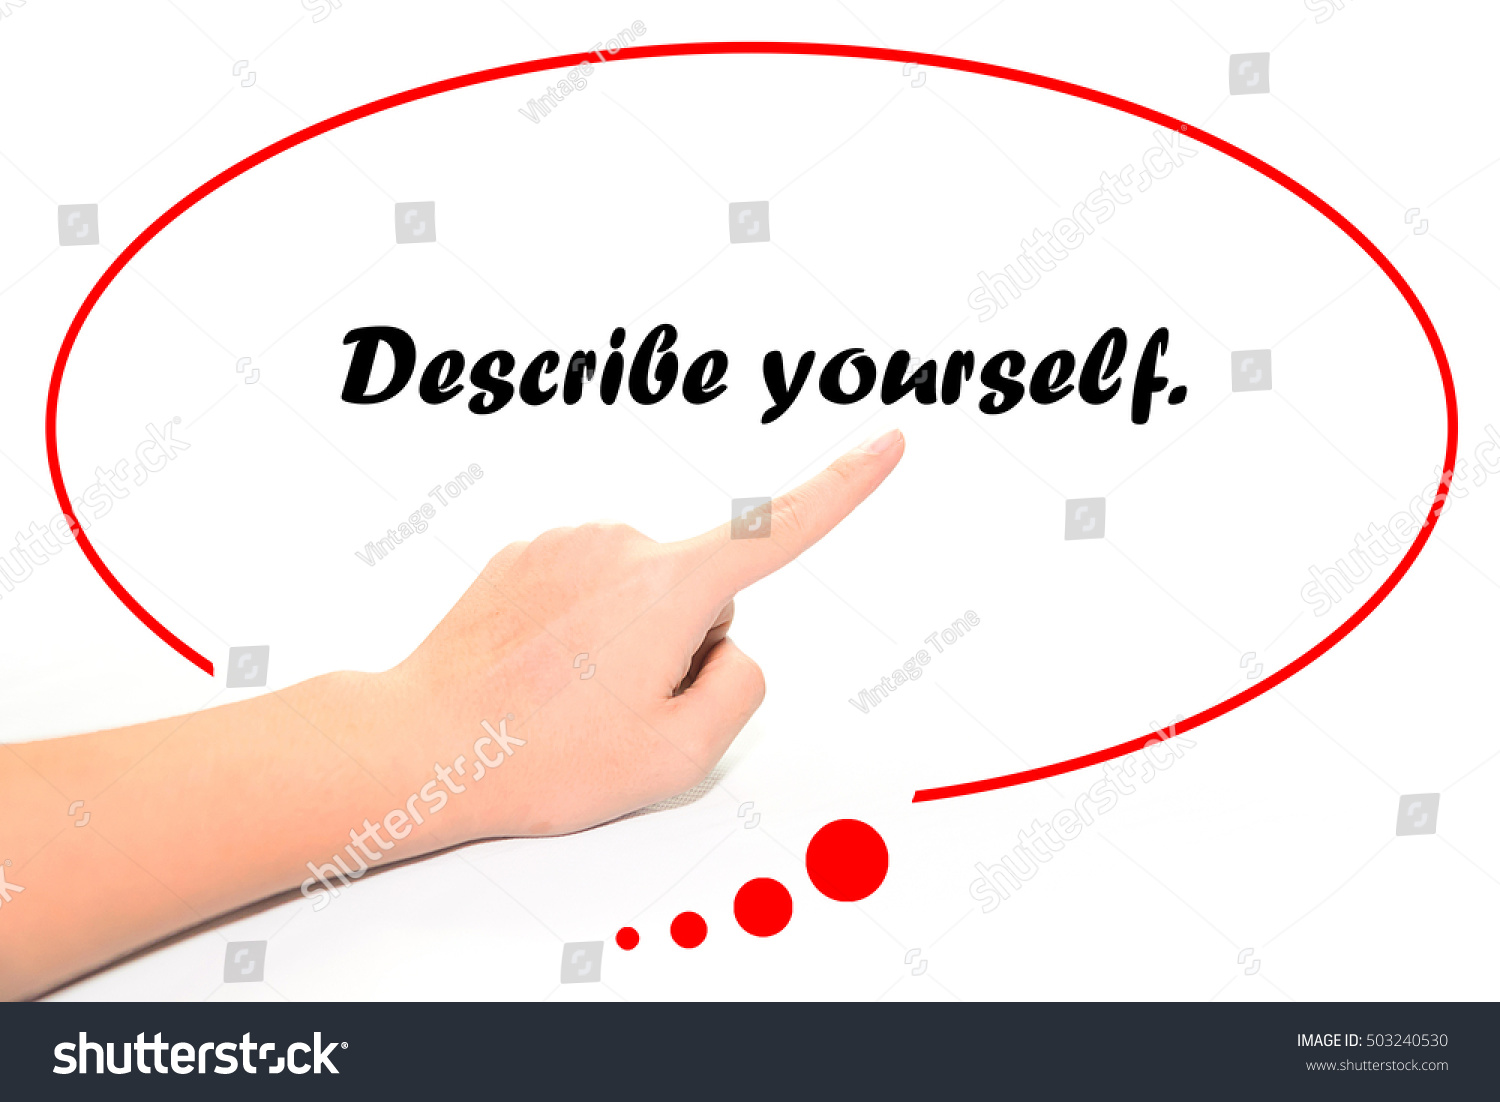 hand writing describe yourself finger pointing stock photo edit now rh shutterstock com How to Finger Yourself DIA Finger Yourself to Get Off